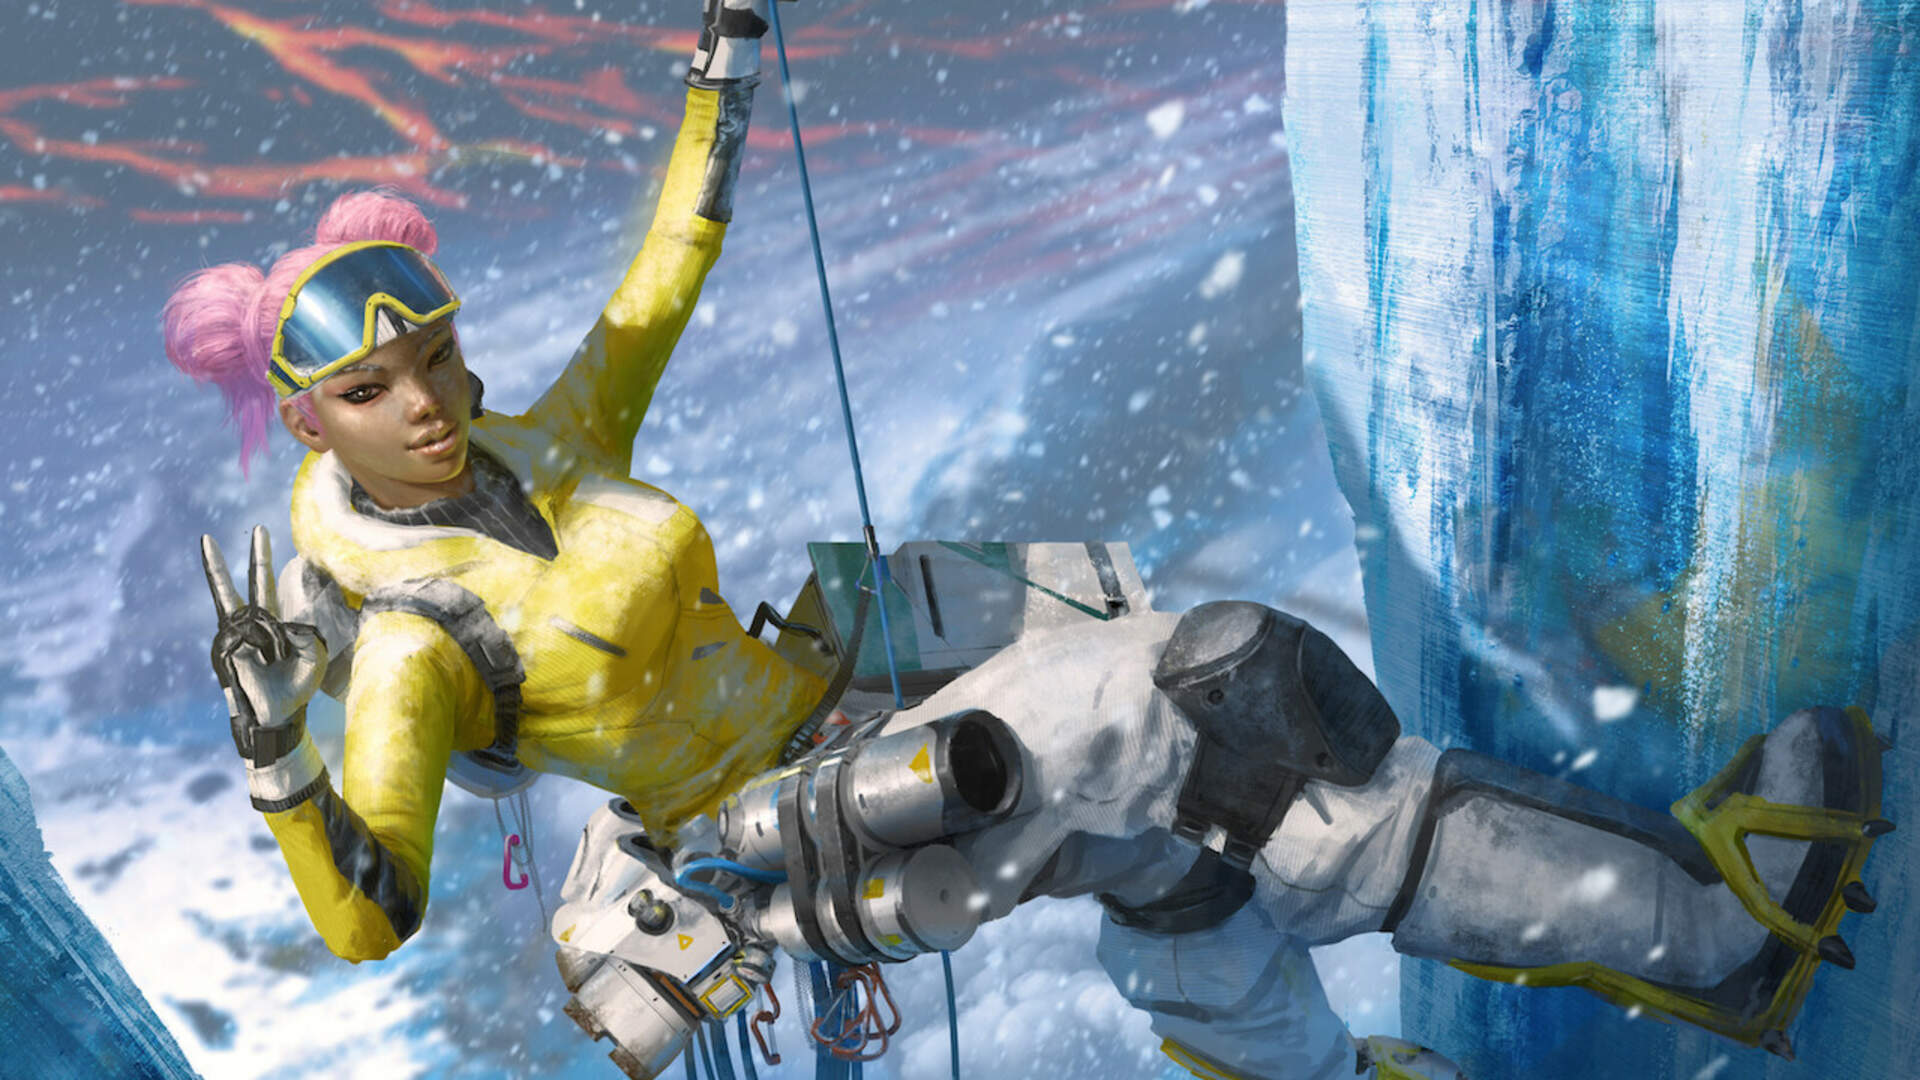 Apex Legends Might Be Hinting at an Offworld Trek for Season 3